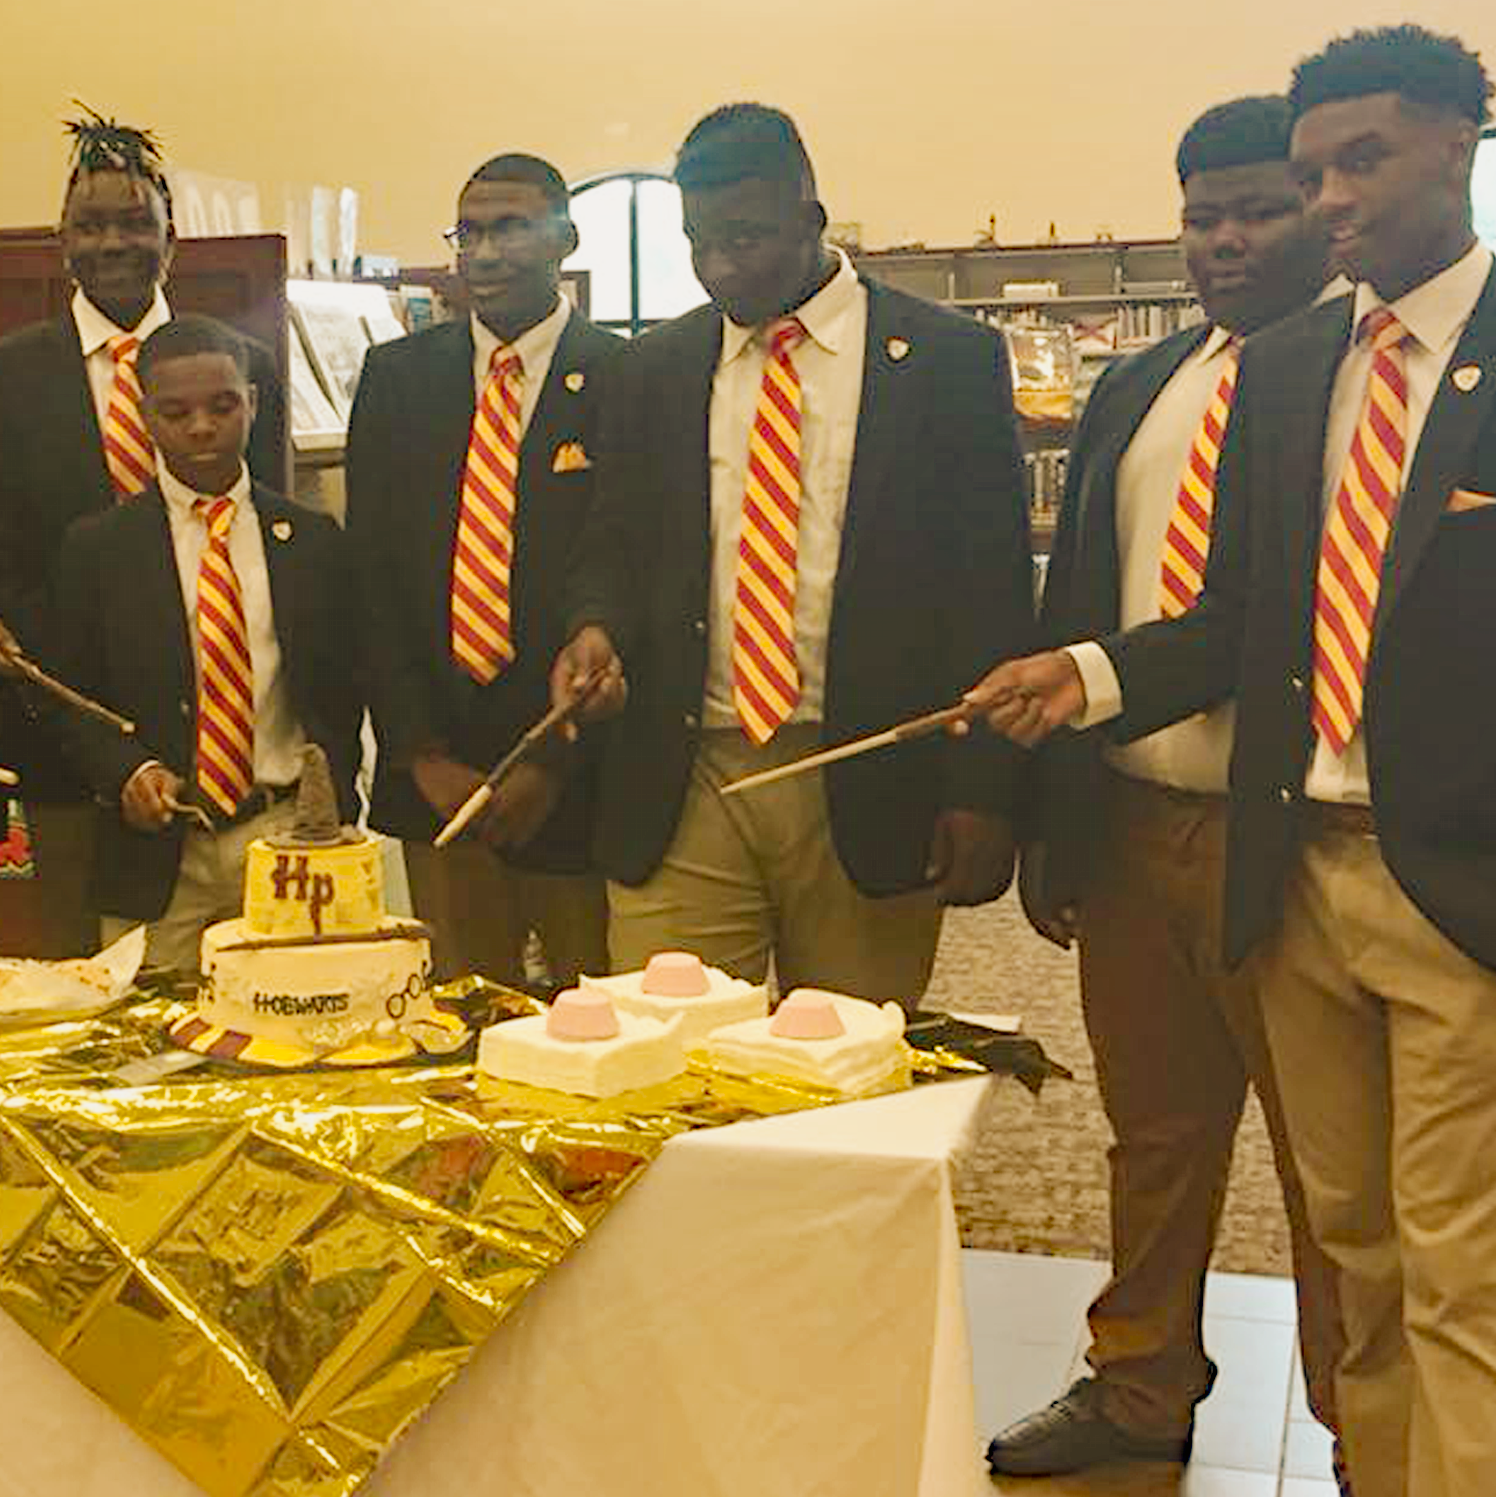 HP Night photo of Daphne boys fraternity dressed in suits for a photo shoot pointing wands at the Harry Potter birthday cake.